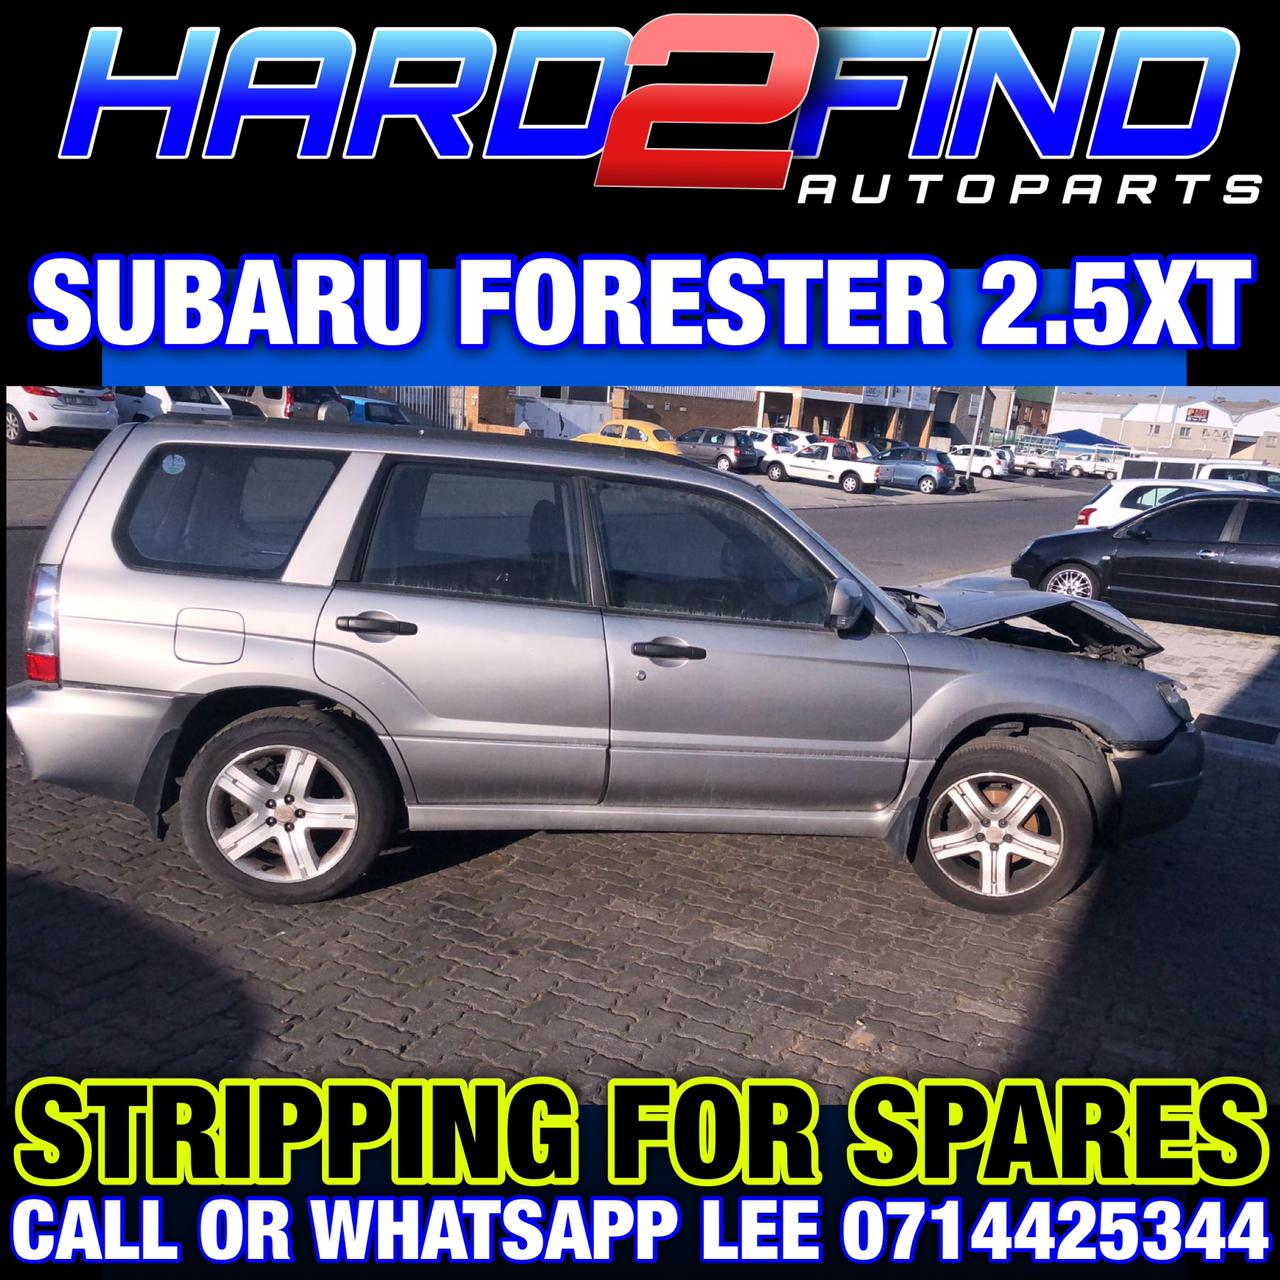 SUBARU FORESTER 2.5XT STRIPPING FOR SPARES